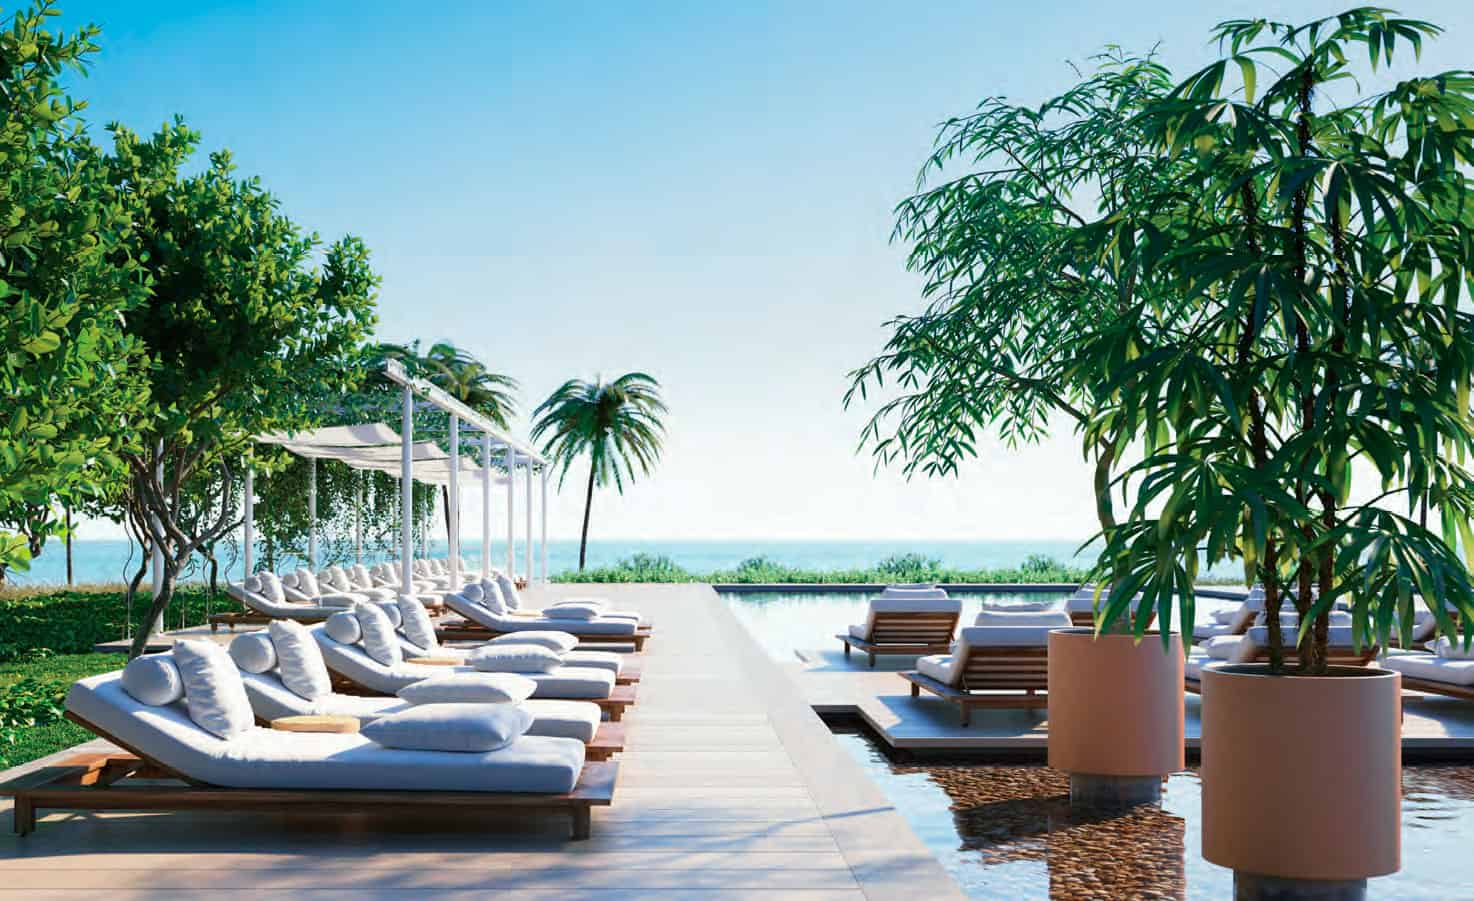 Eighty Seven Park Miami Beach - Pool and Cabanas 2